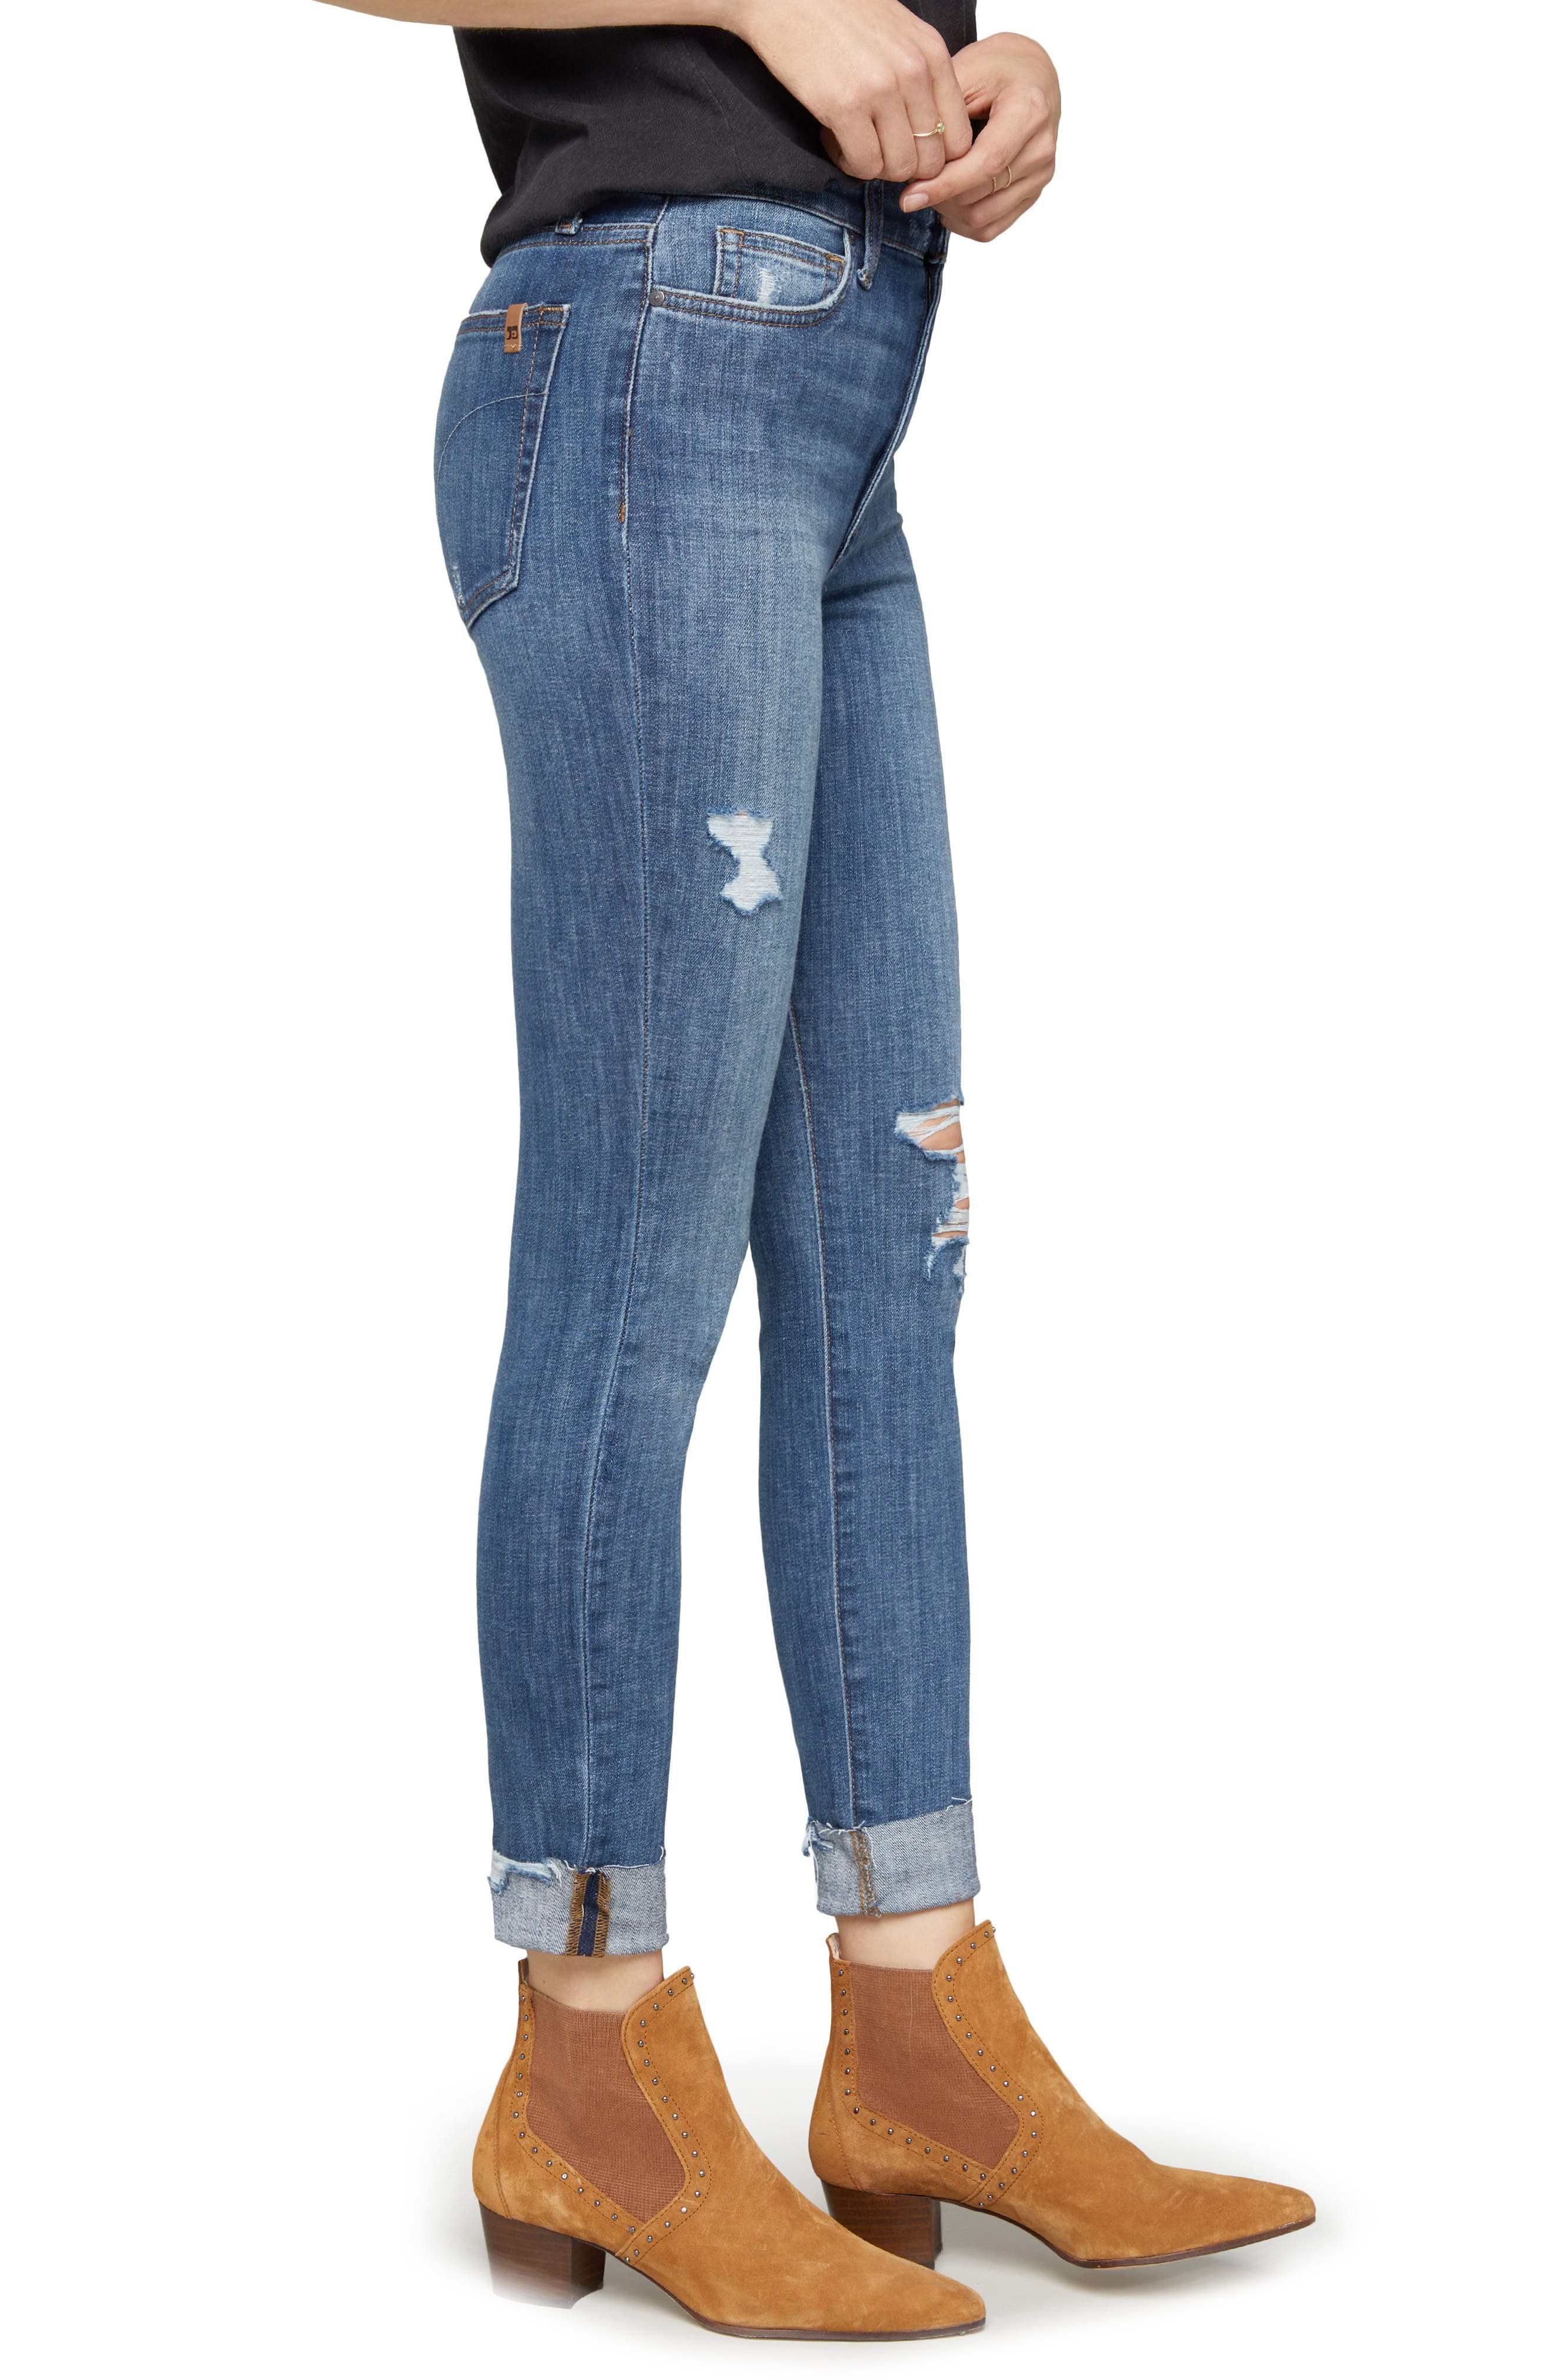 Charlie Crop Ripped Skinny Jeans,                             Alternate thumbnail 3, color,                             Leor